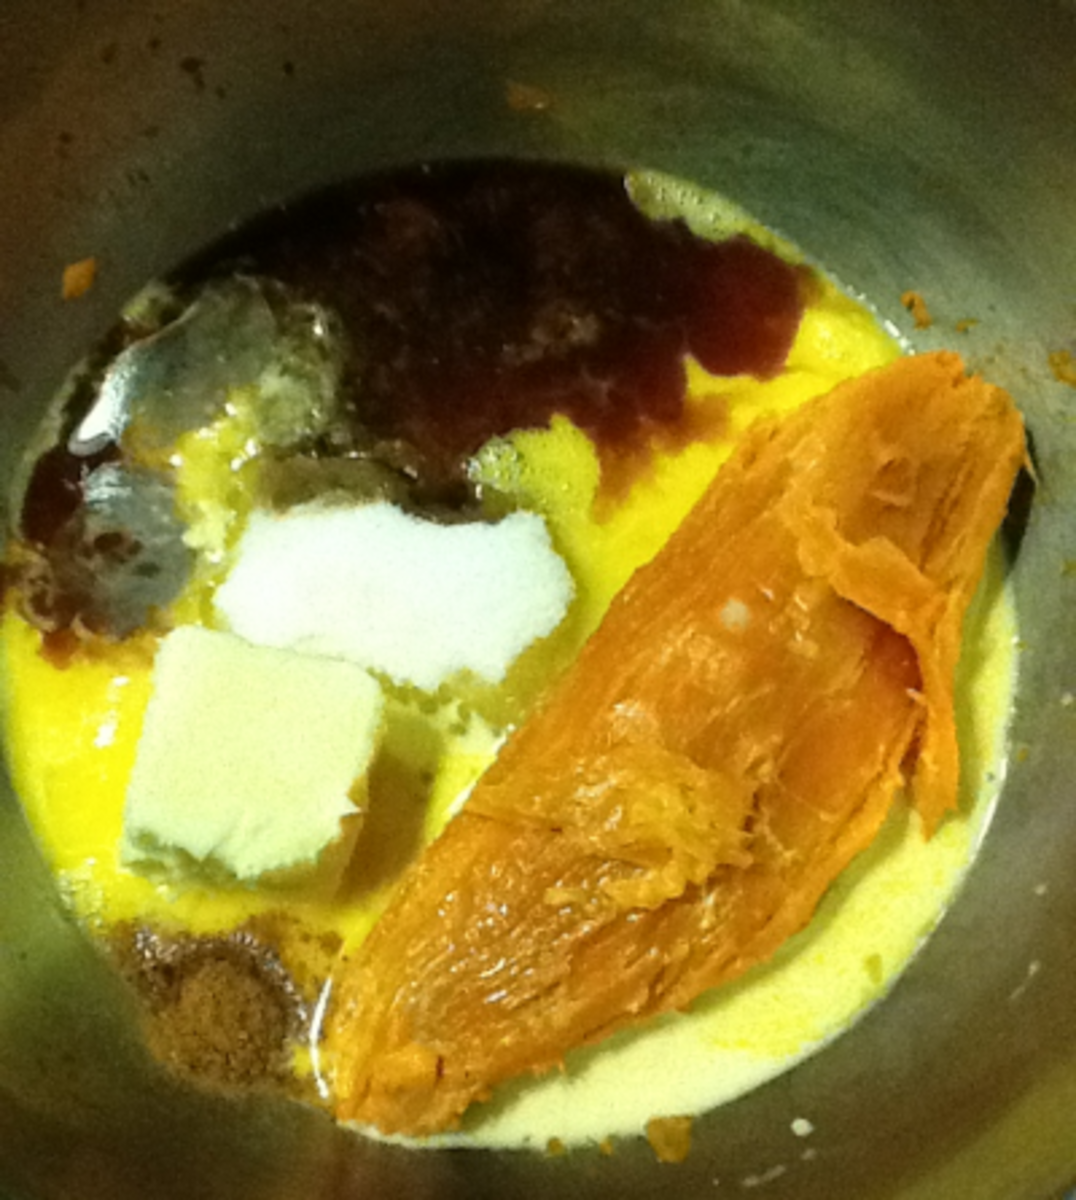 The ingredients in the bowl.  The sweet potato has already been boiled and peeled.